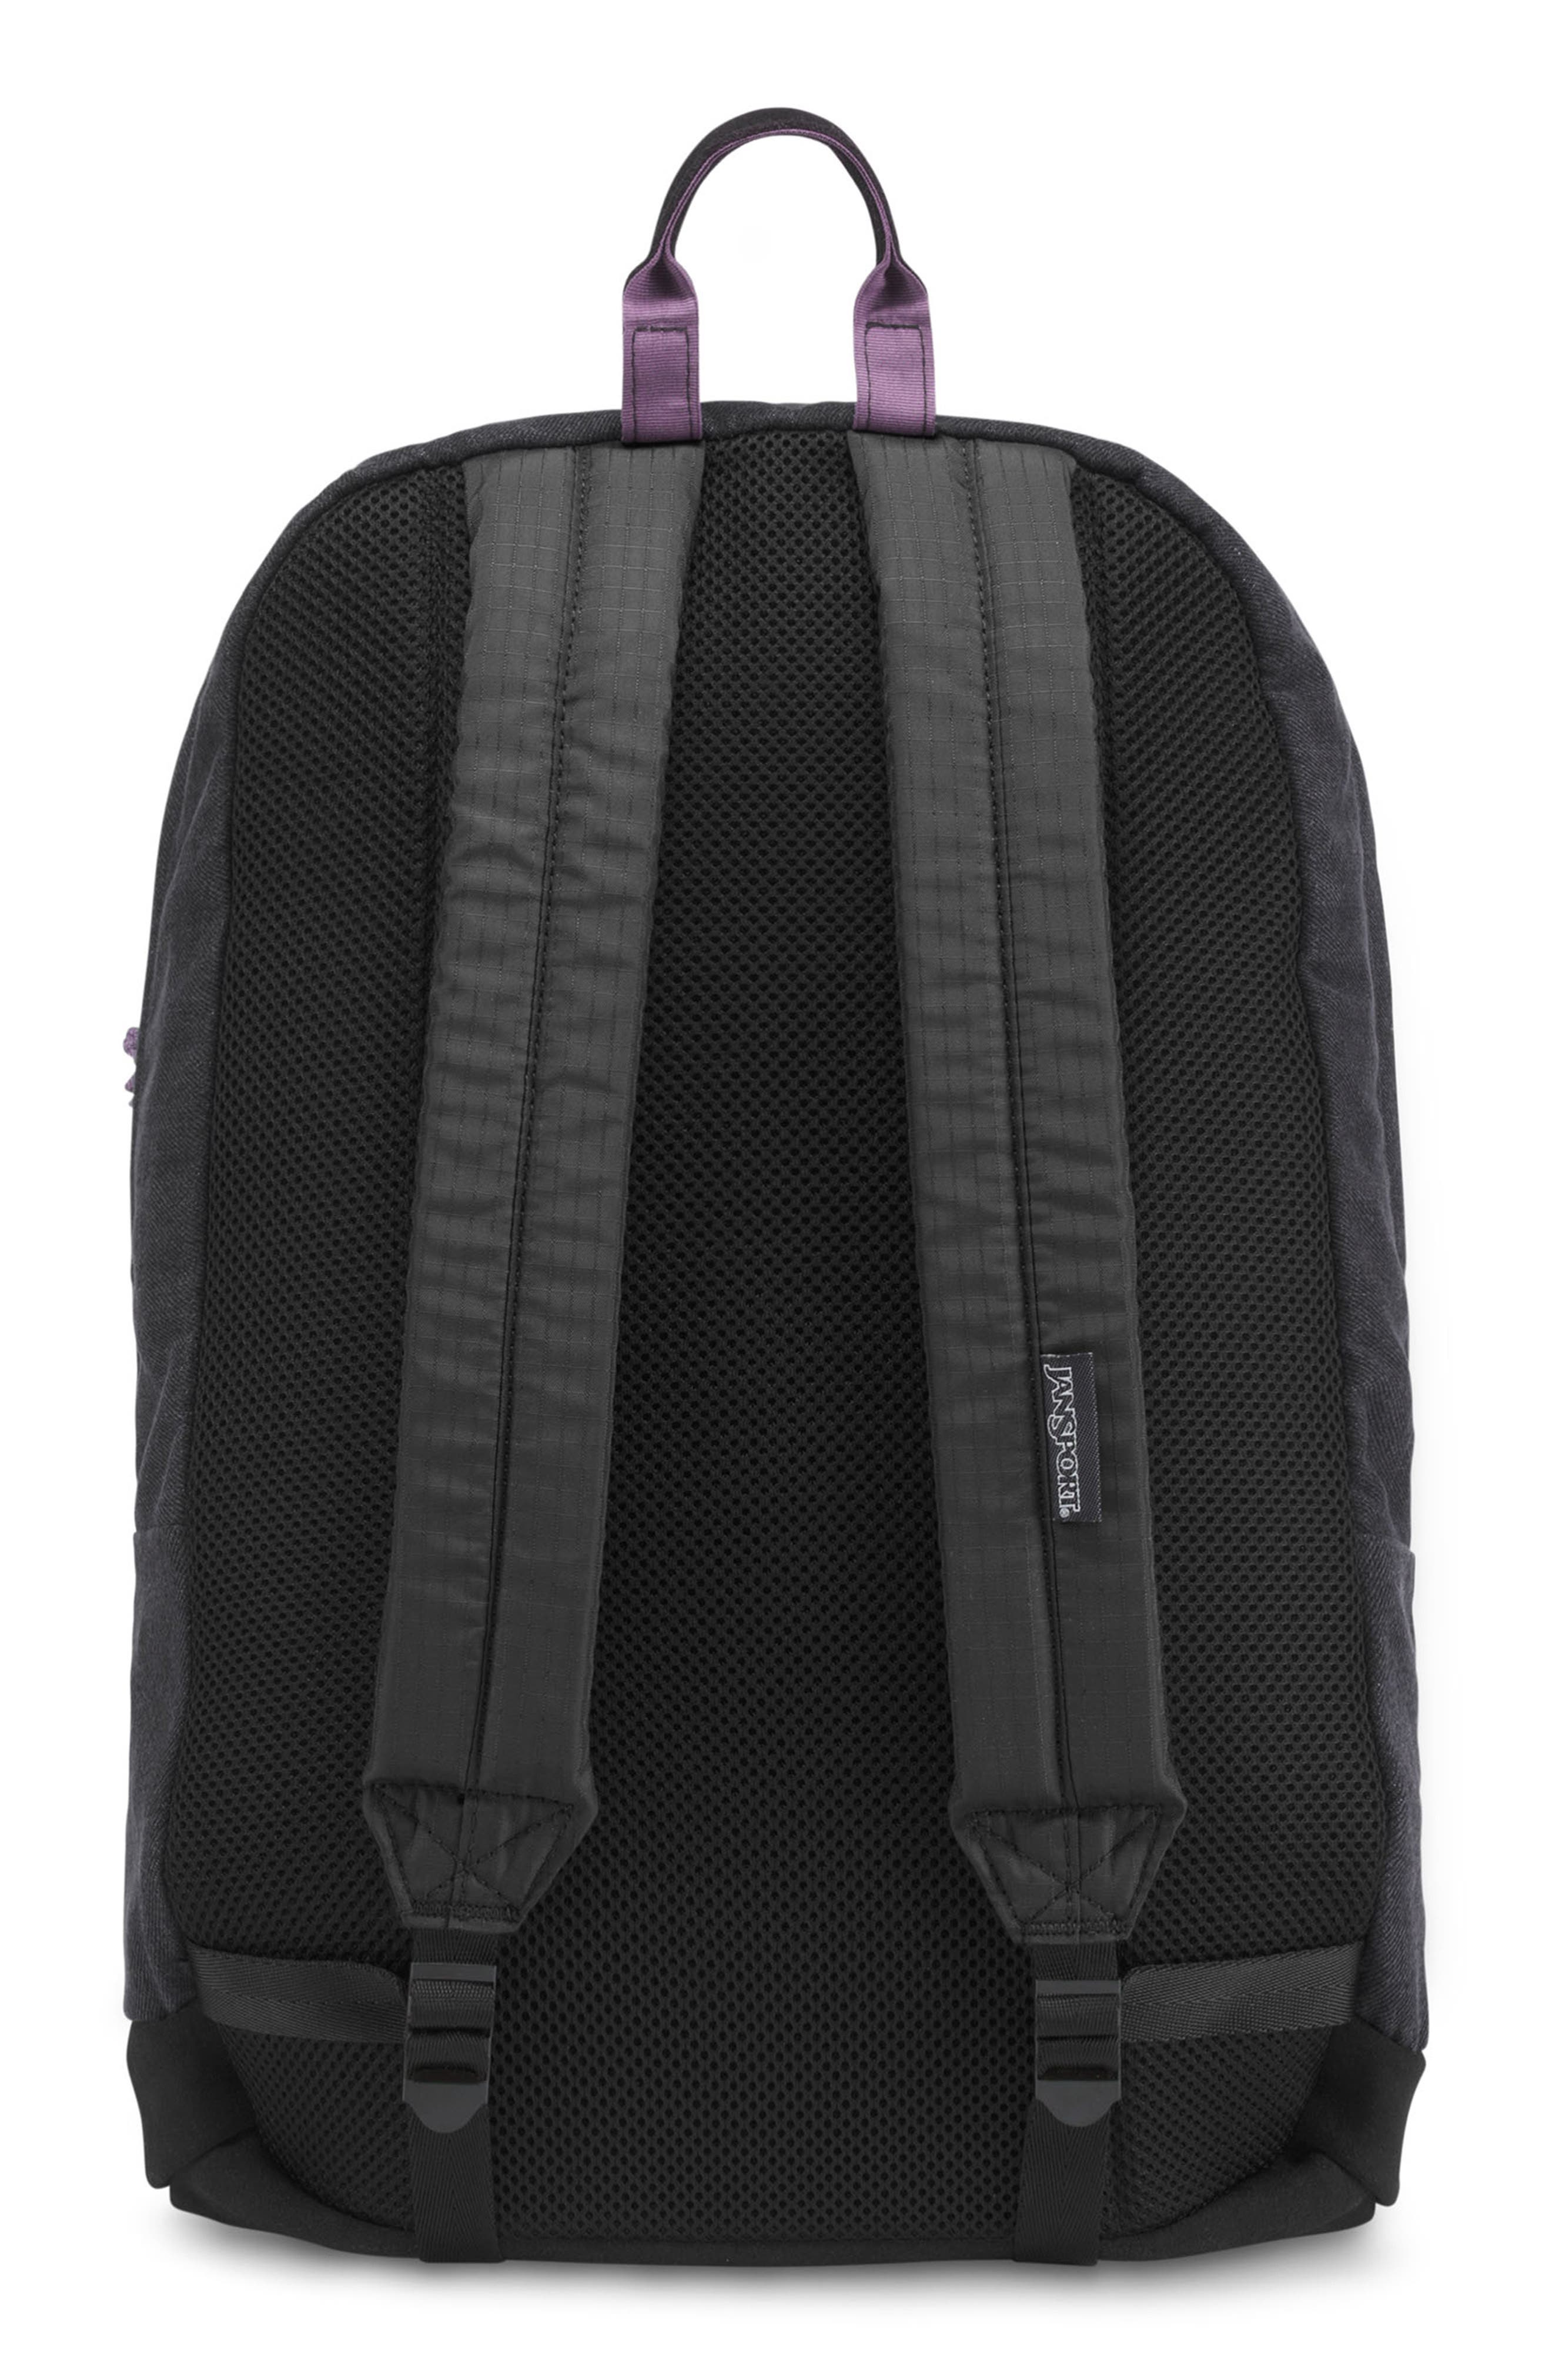 Right Pack Backpack,                             Alternate thumbnail 3, color,                             001